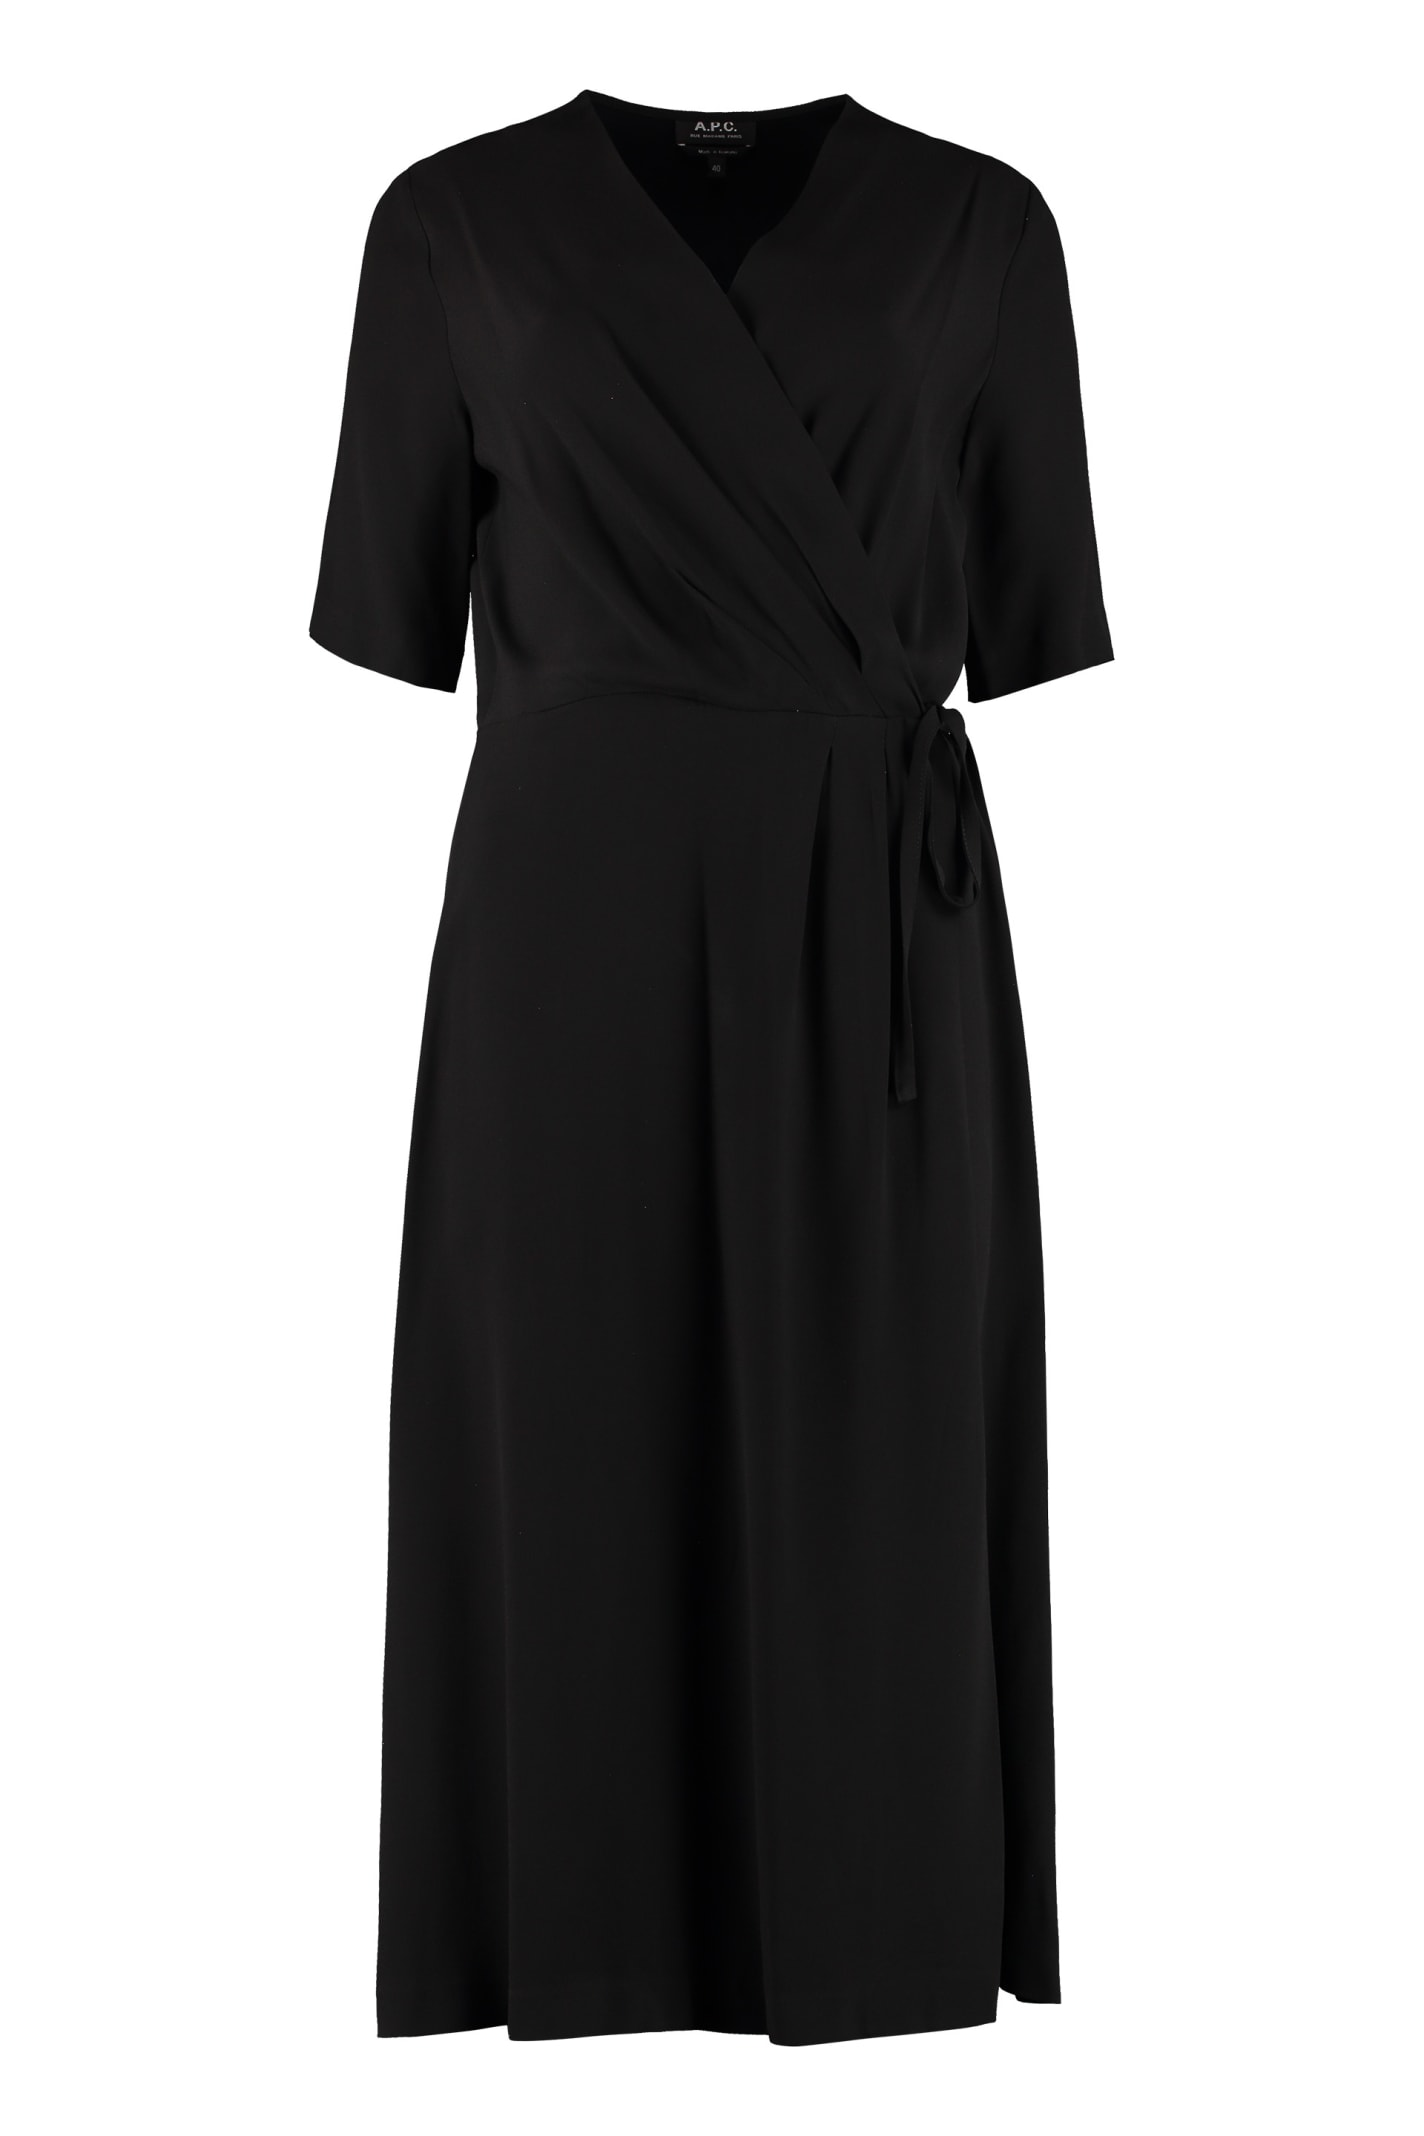 Buy A.P.C. Mathilda Cr?e Dress online, shop A.P.C. with free shipping